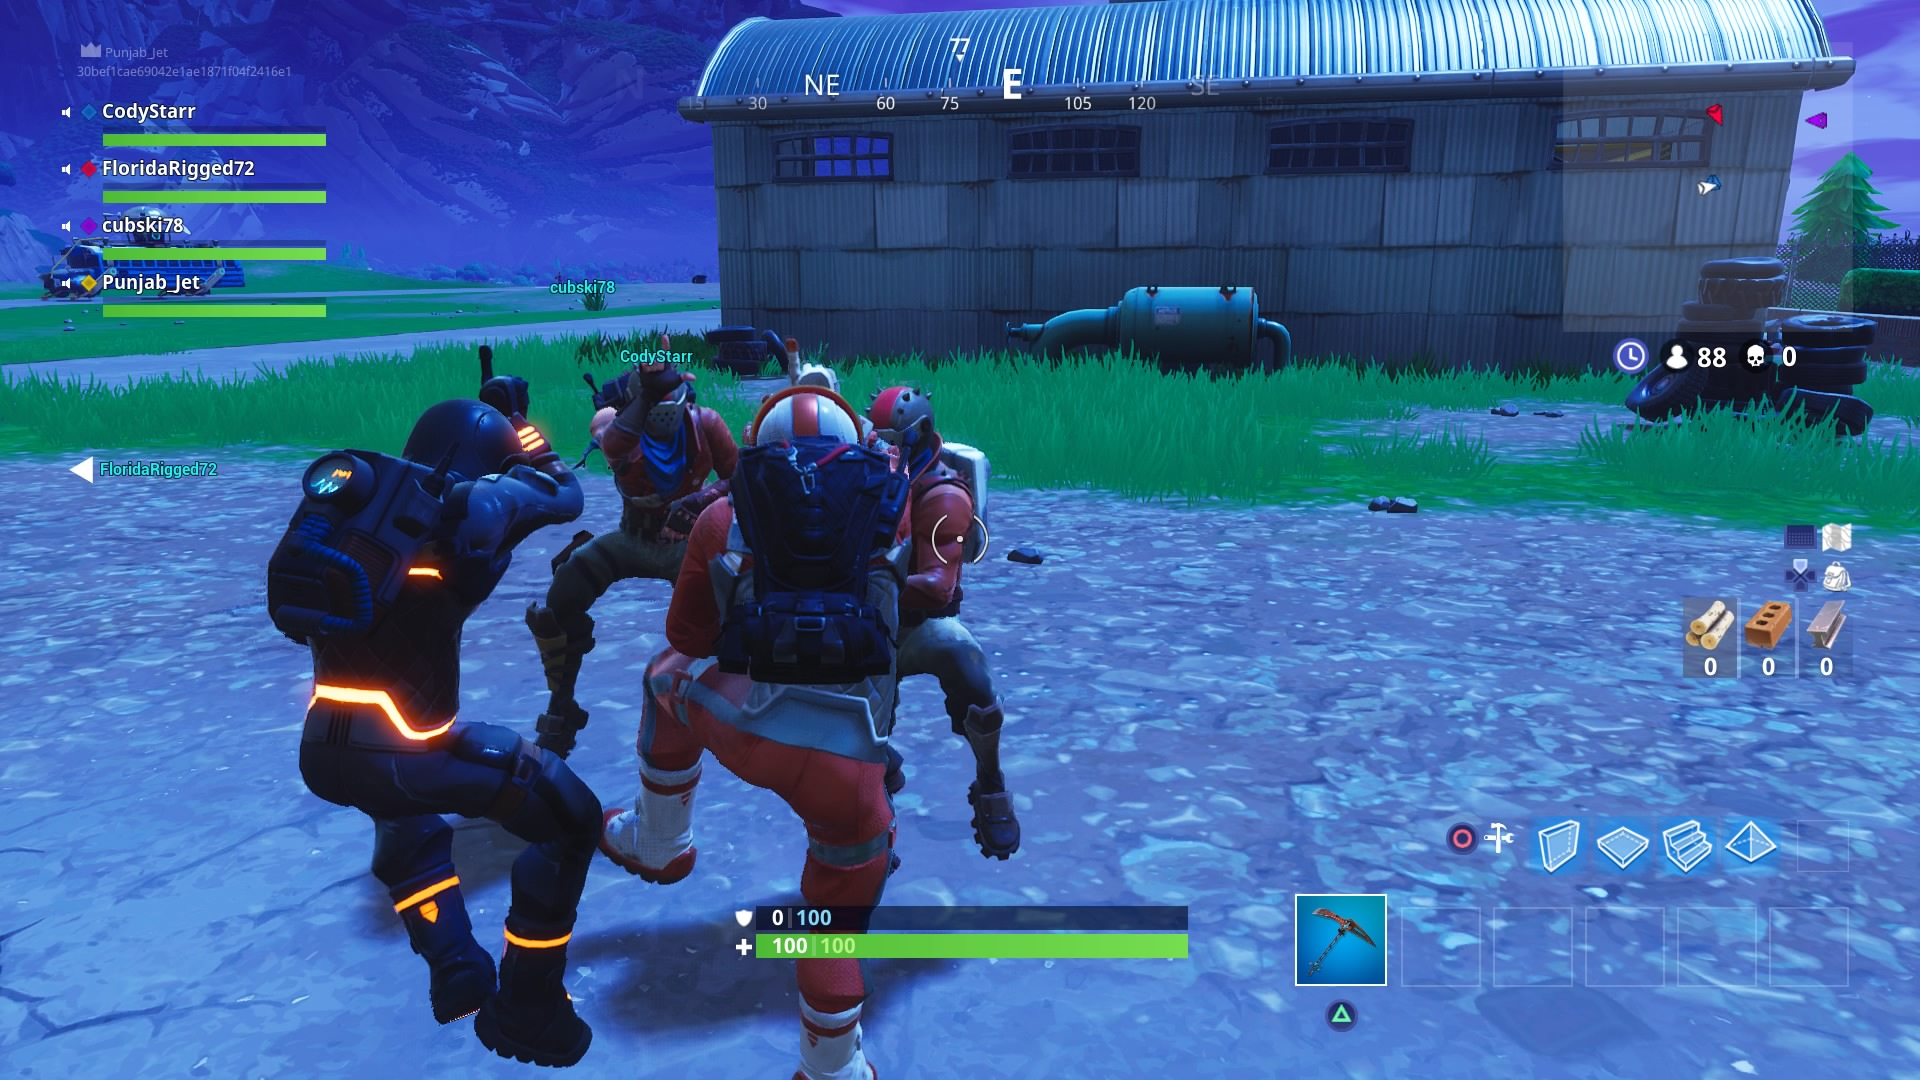 Fortnite Dance Party Desktop Wallpaper 753